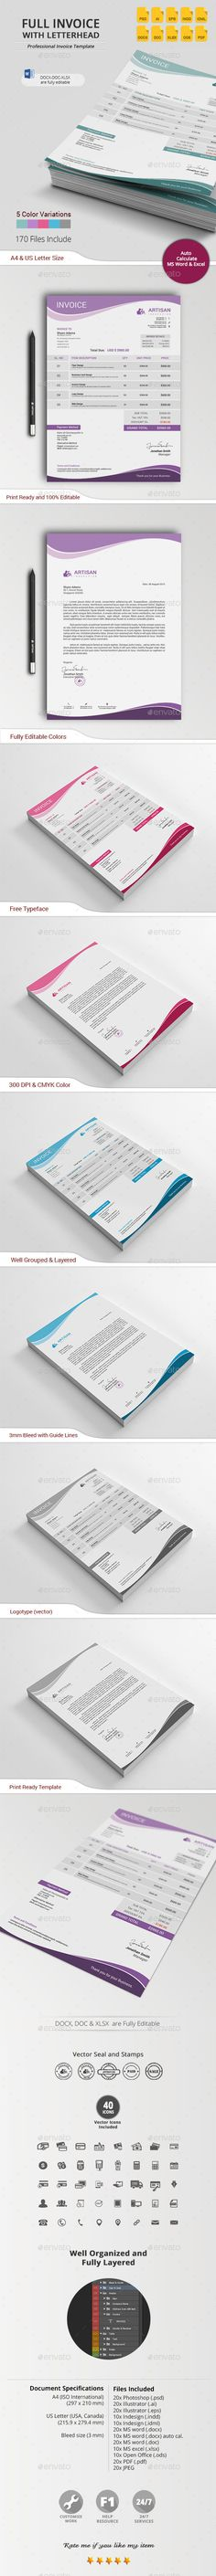 #Invoice with #Letterhead - #Proposals & Invoices #Stationery Download here: https://graphicriver.net/item/invoice-with-letterhead/13377589?ref=alena994